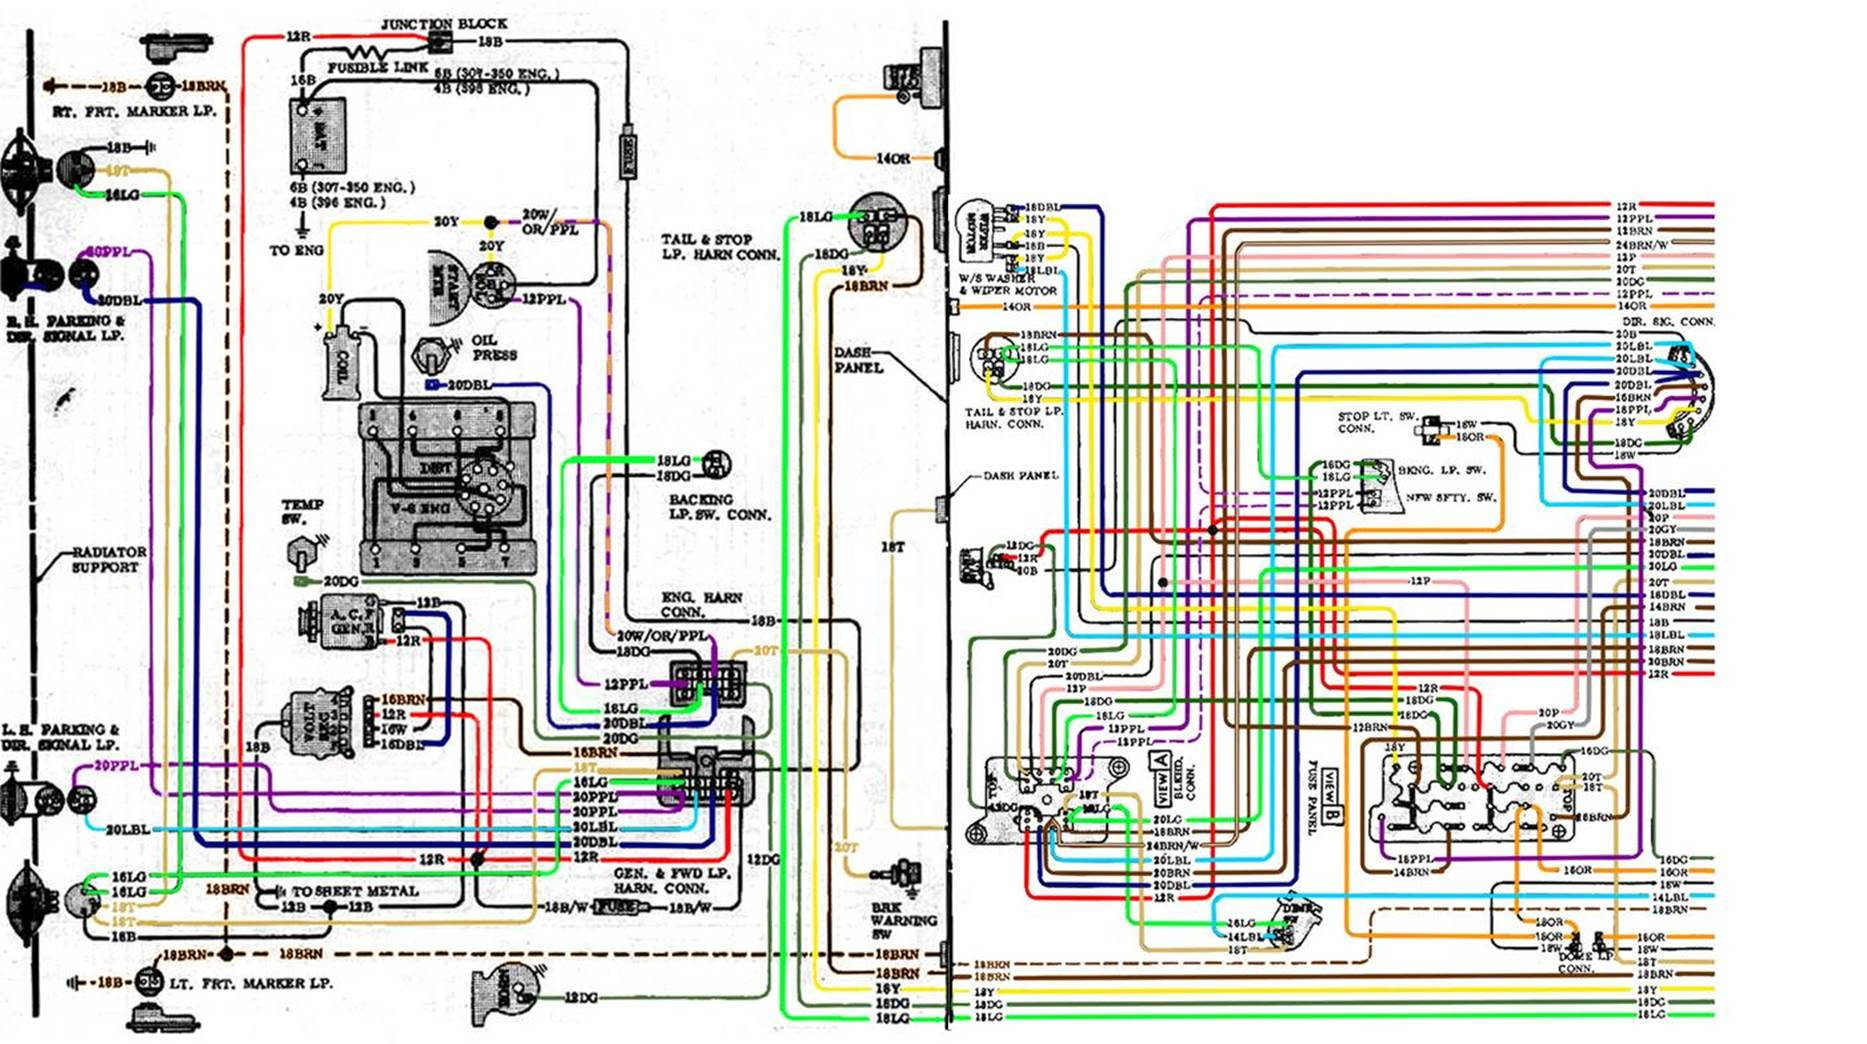 image002 67 72 chevy wiring diagram 1965 chevy c10 wiring harness at alyssarenee.co